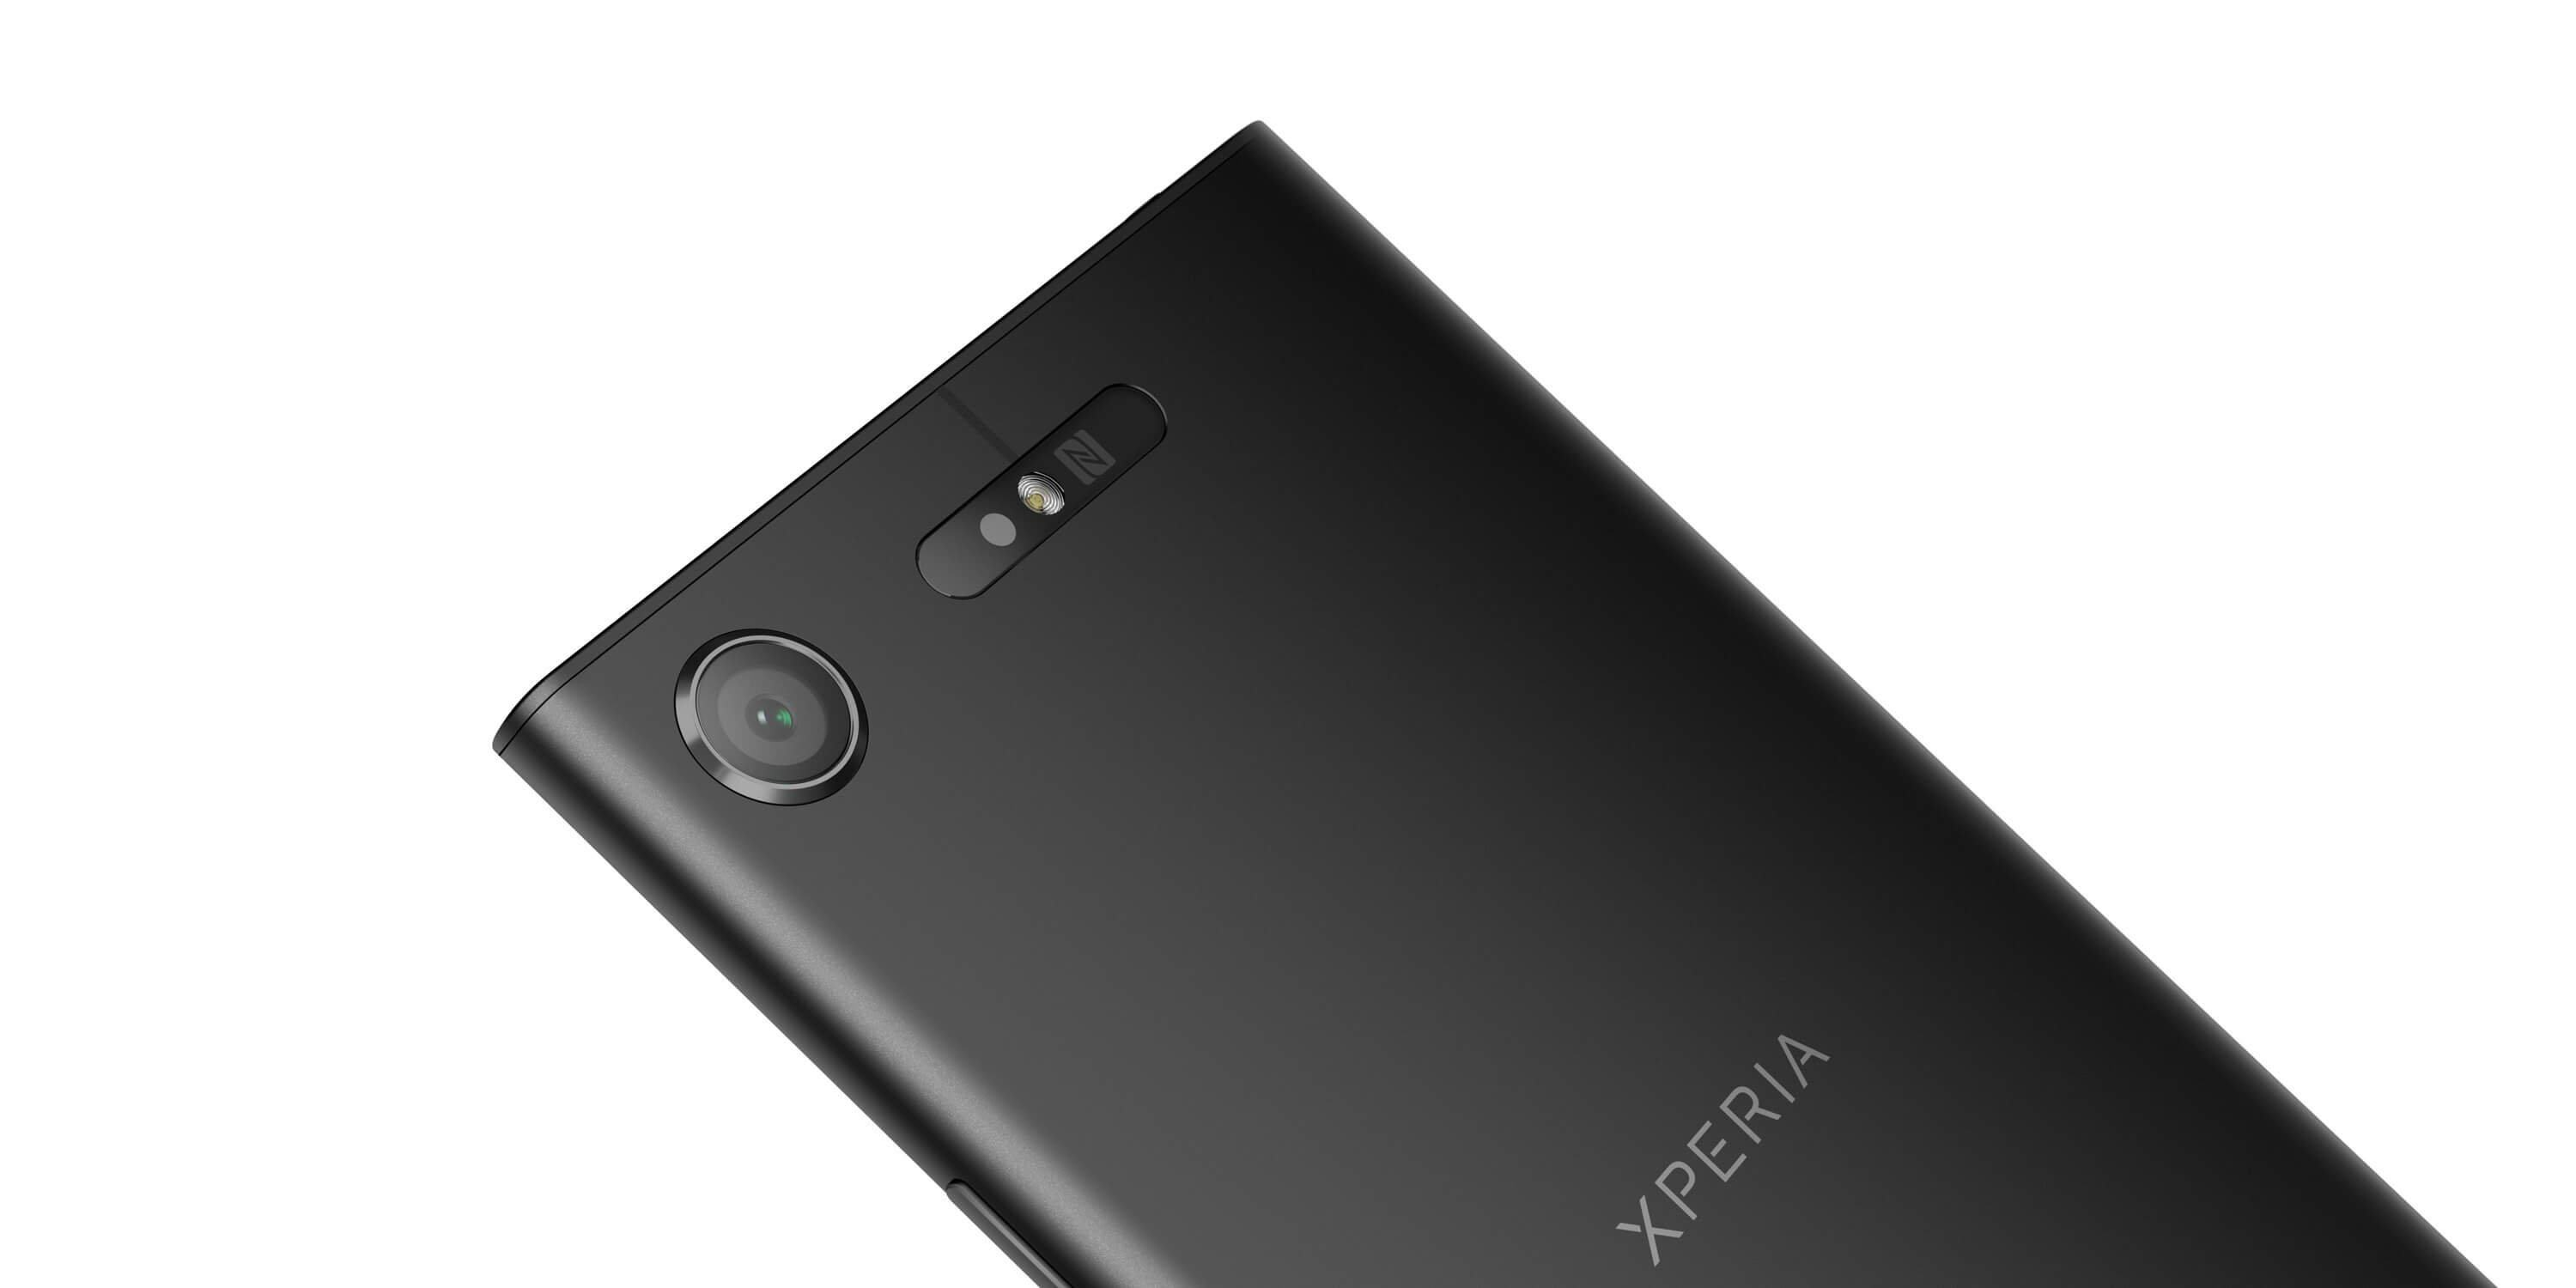 IFA 2017: Sony Xperia XZ1 und XZ1 Compact mit 3D Scan-Funktion 13